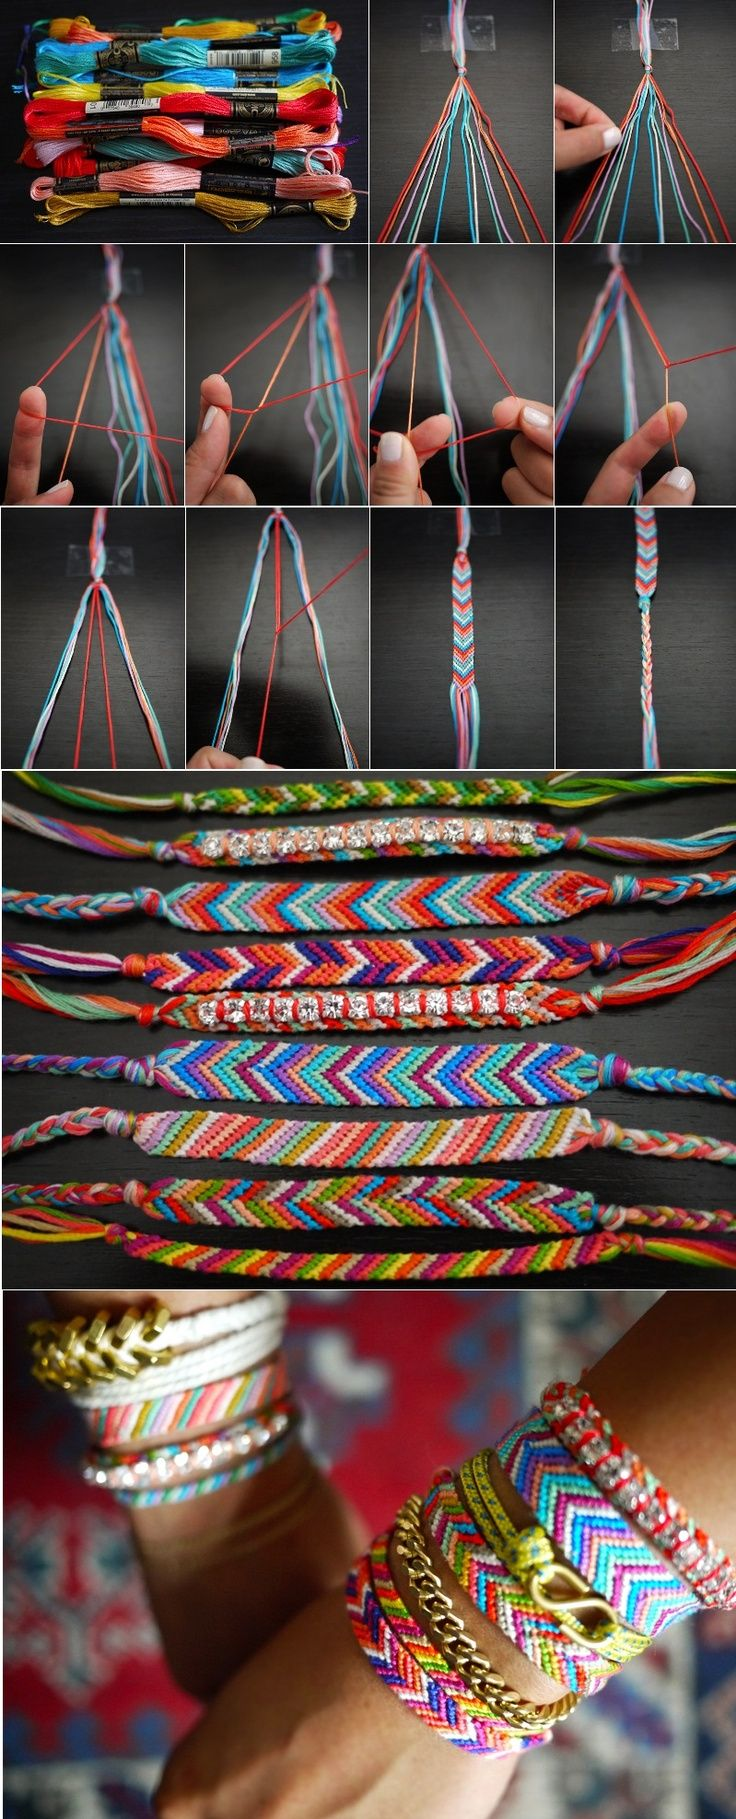 DIY friendship bracelets  #friendshipbracelets #macrame #bracelets